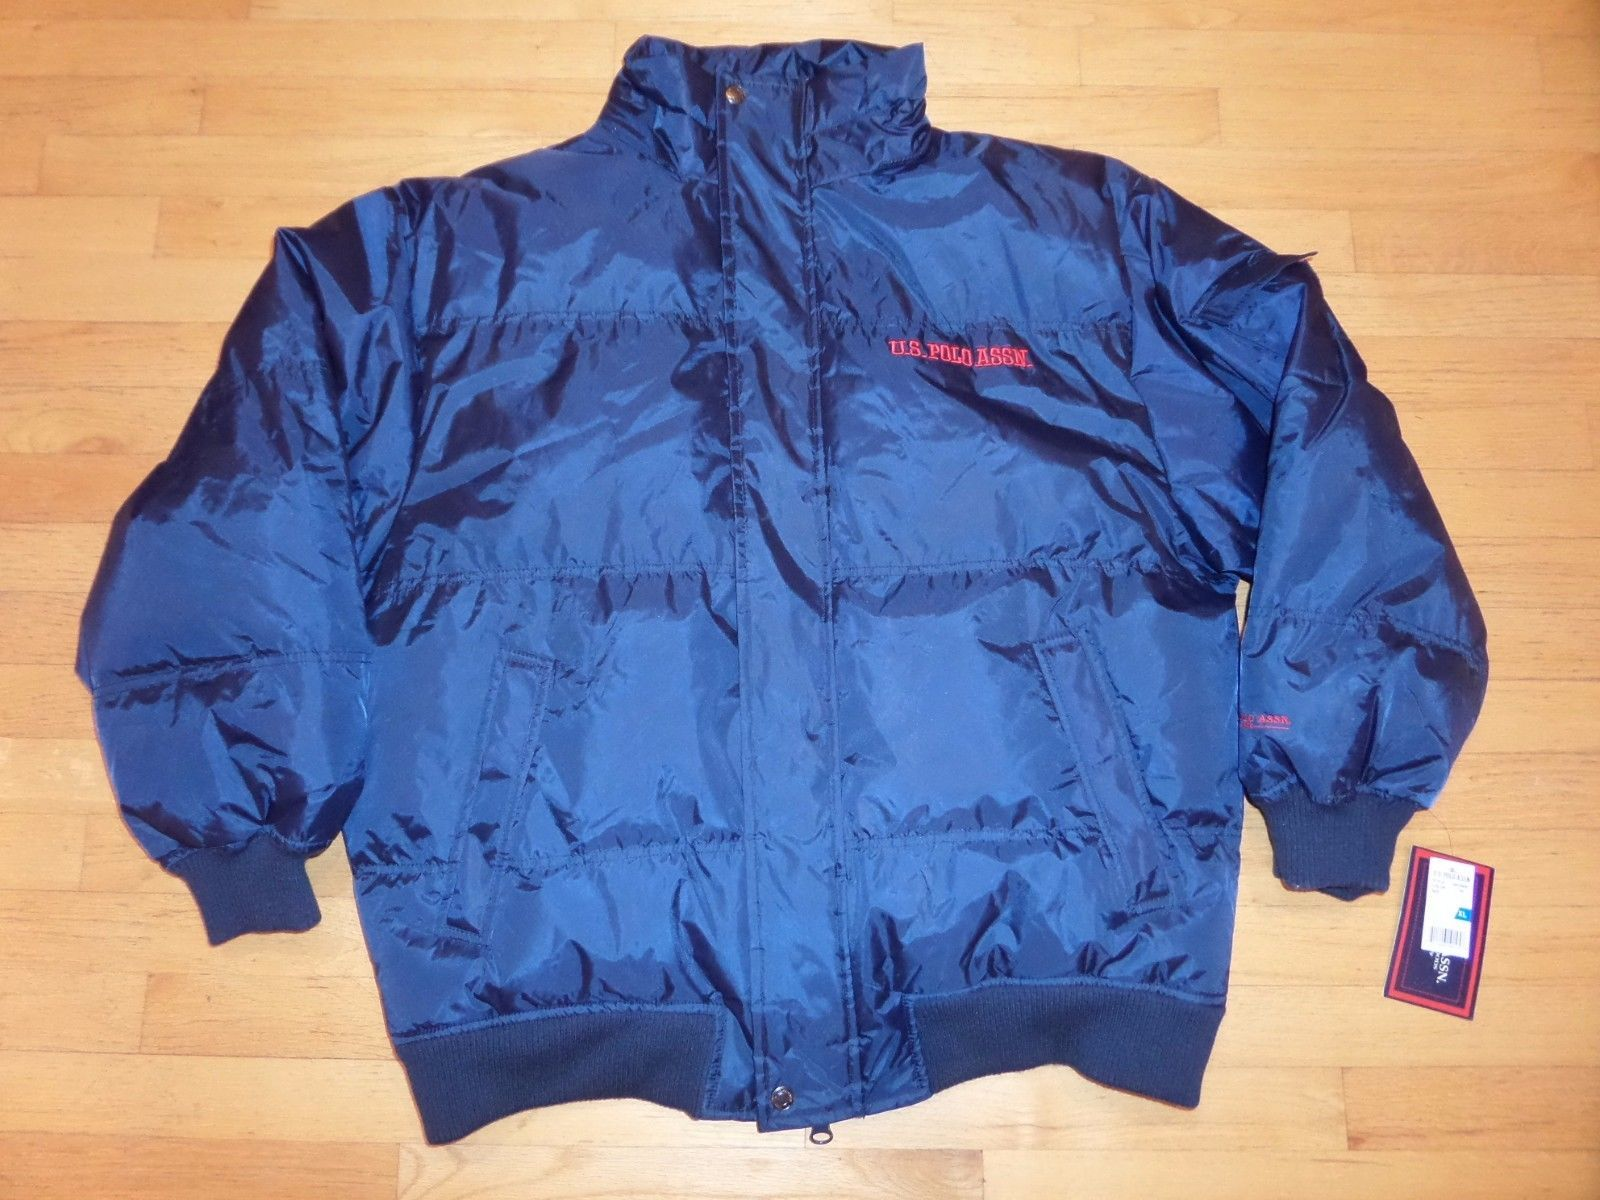 baeecf8be6a CL NWT U.S. Polo Assn Puffer and 50 similar items